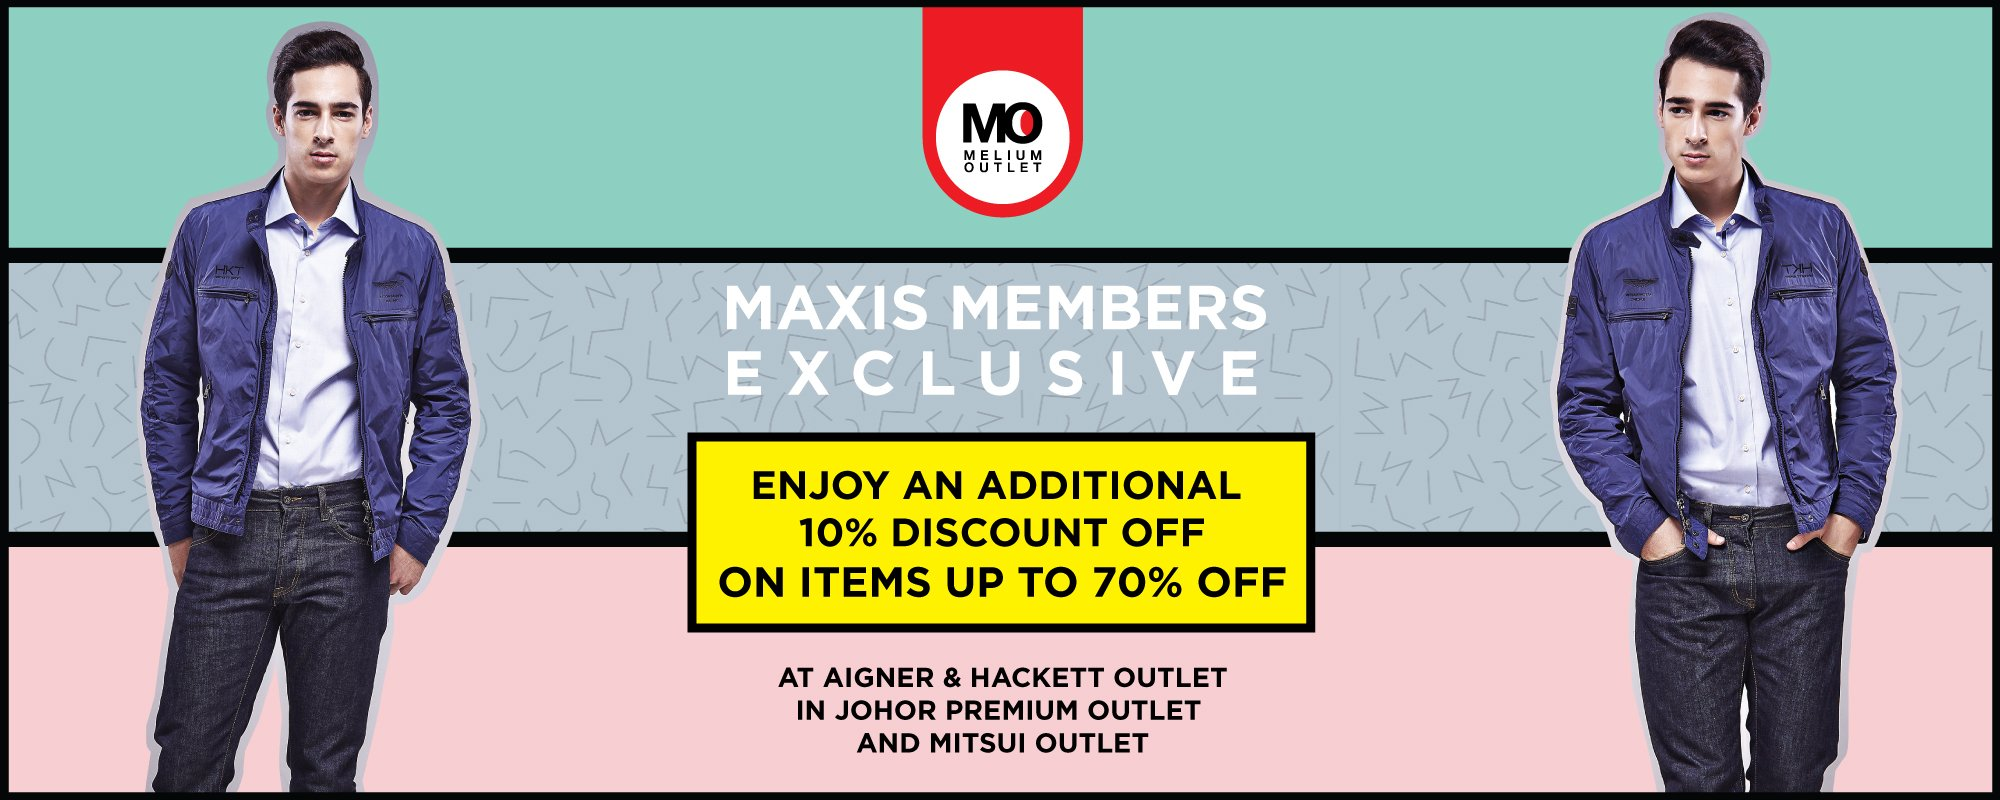 MO-maxis-member-exclusive-Sept-16_2